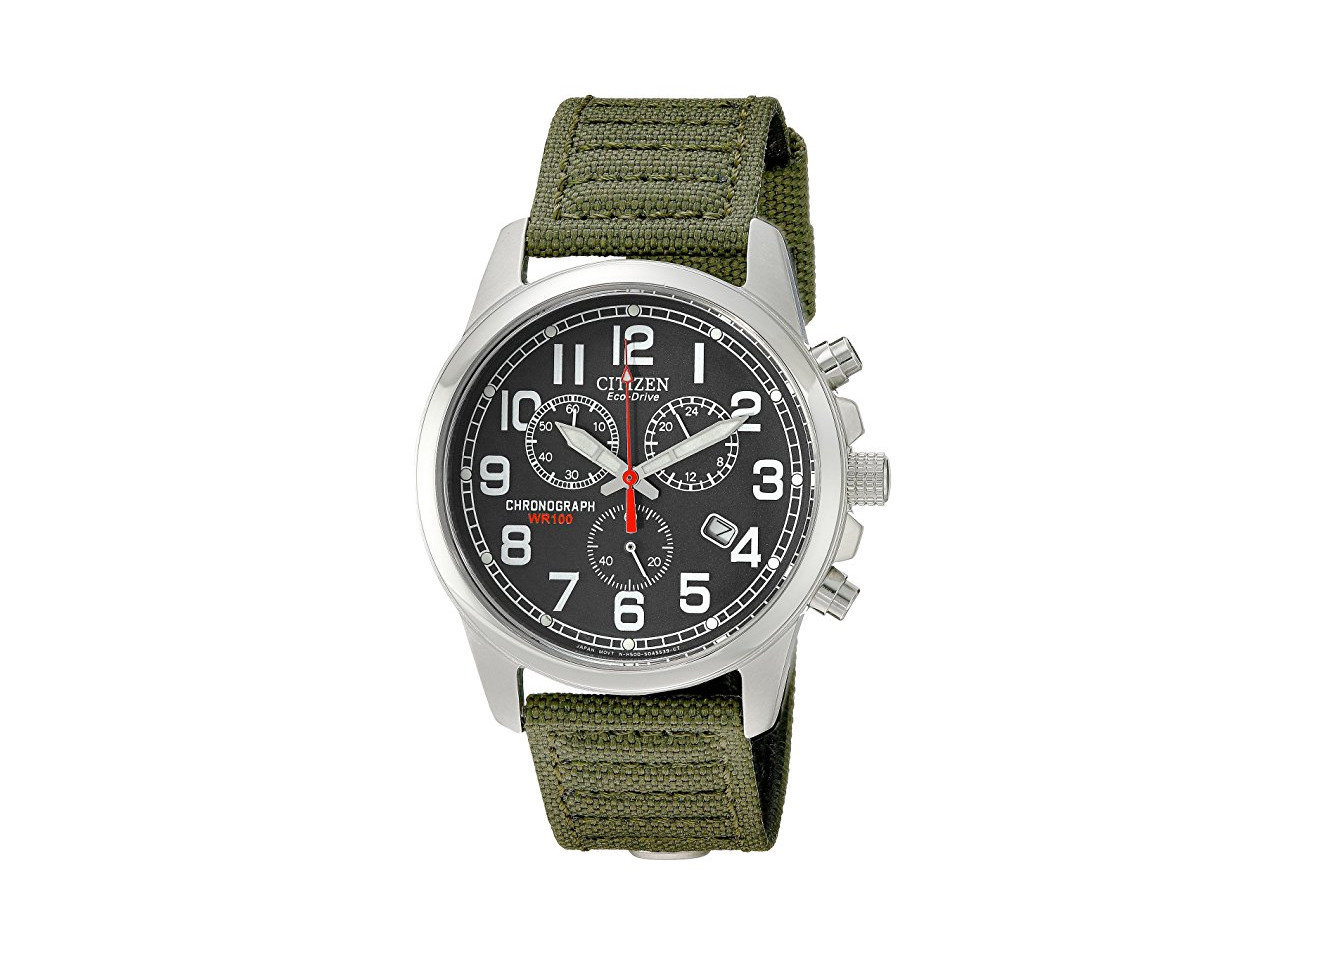 shopping Style + Design watch watch accessory watch strap strap product design product brand